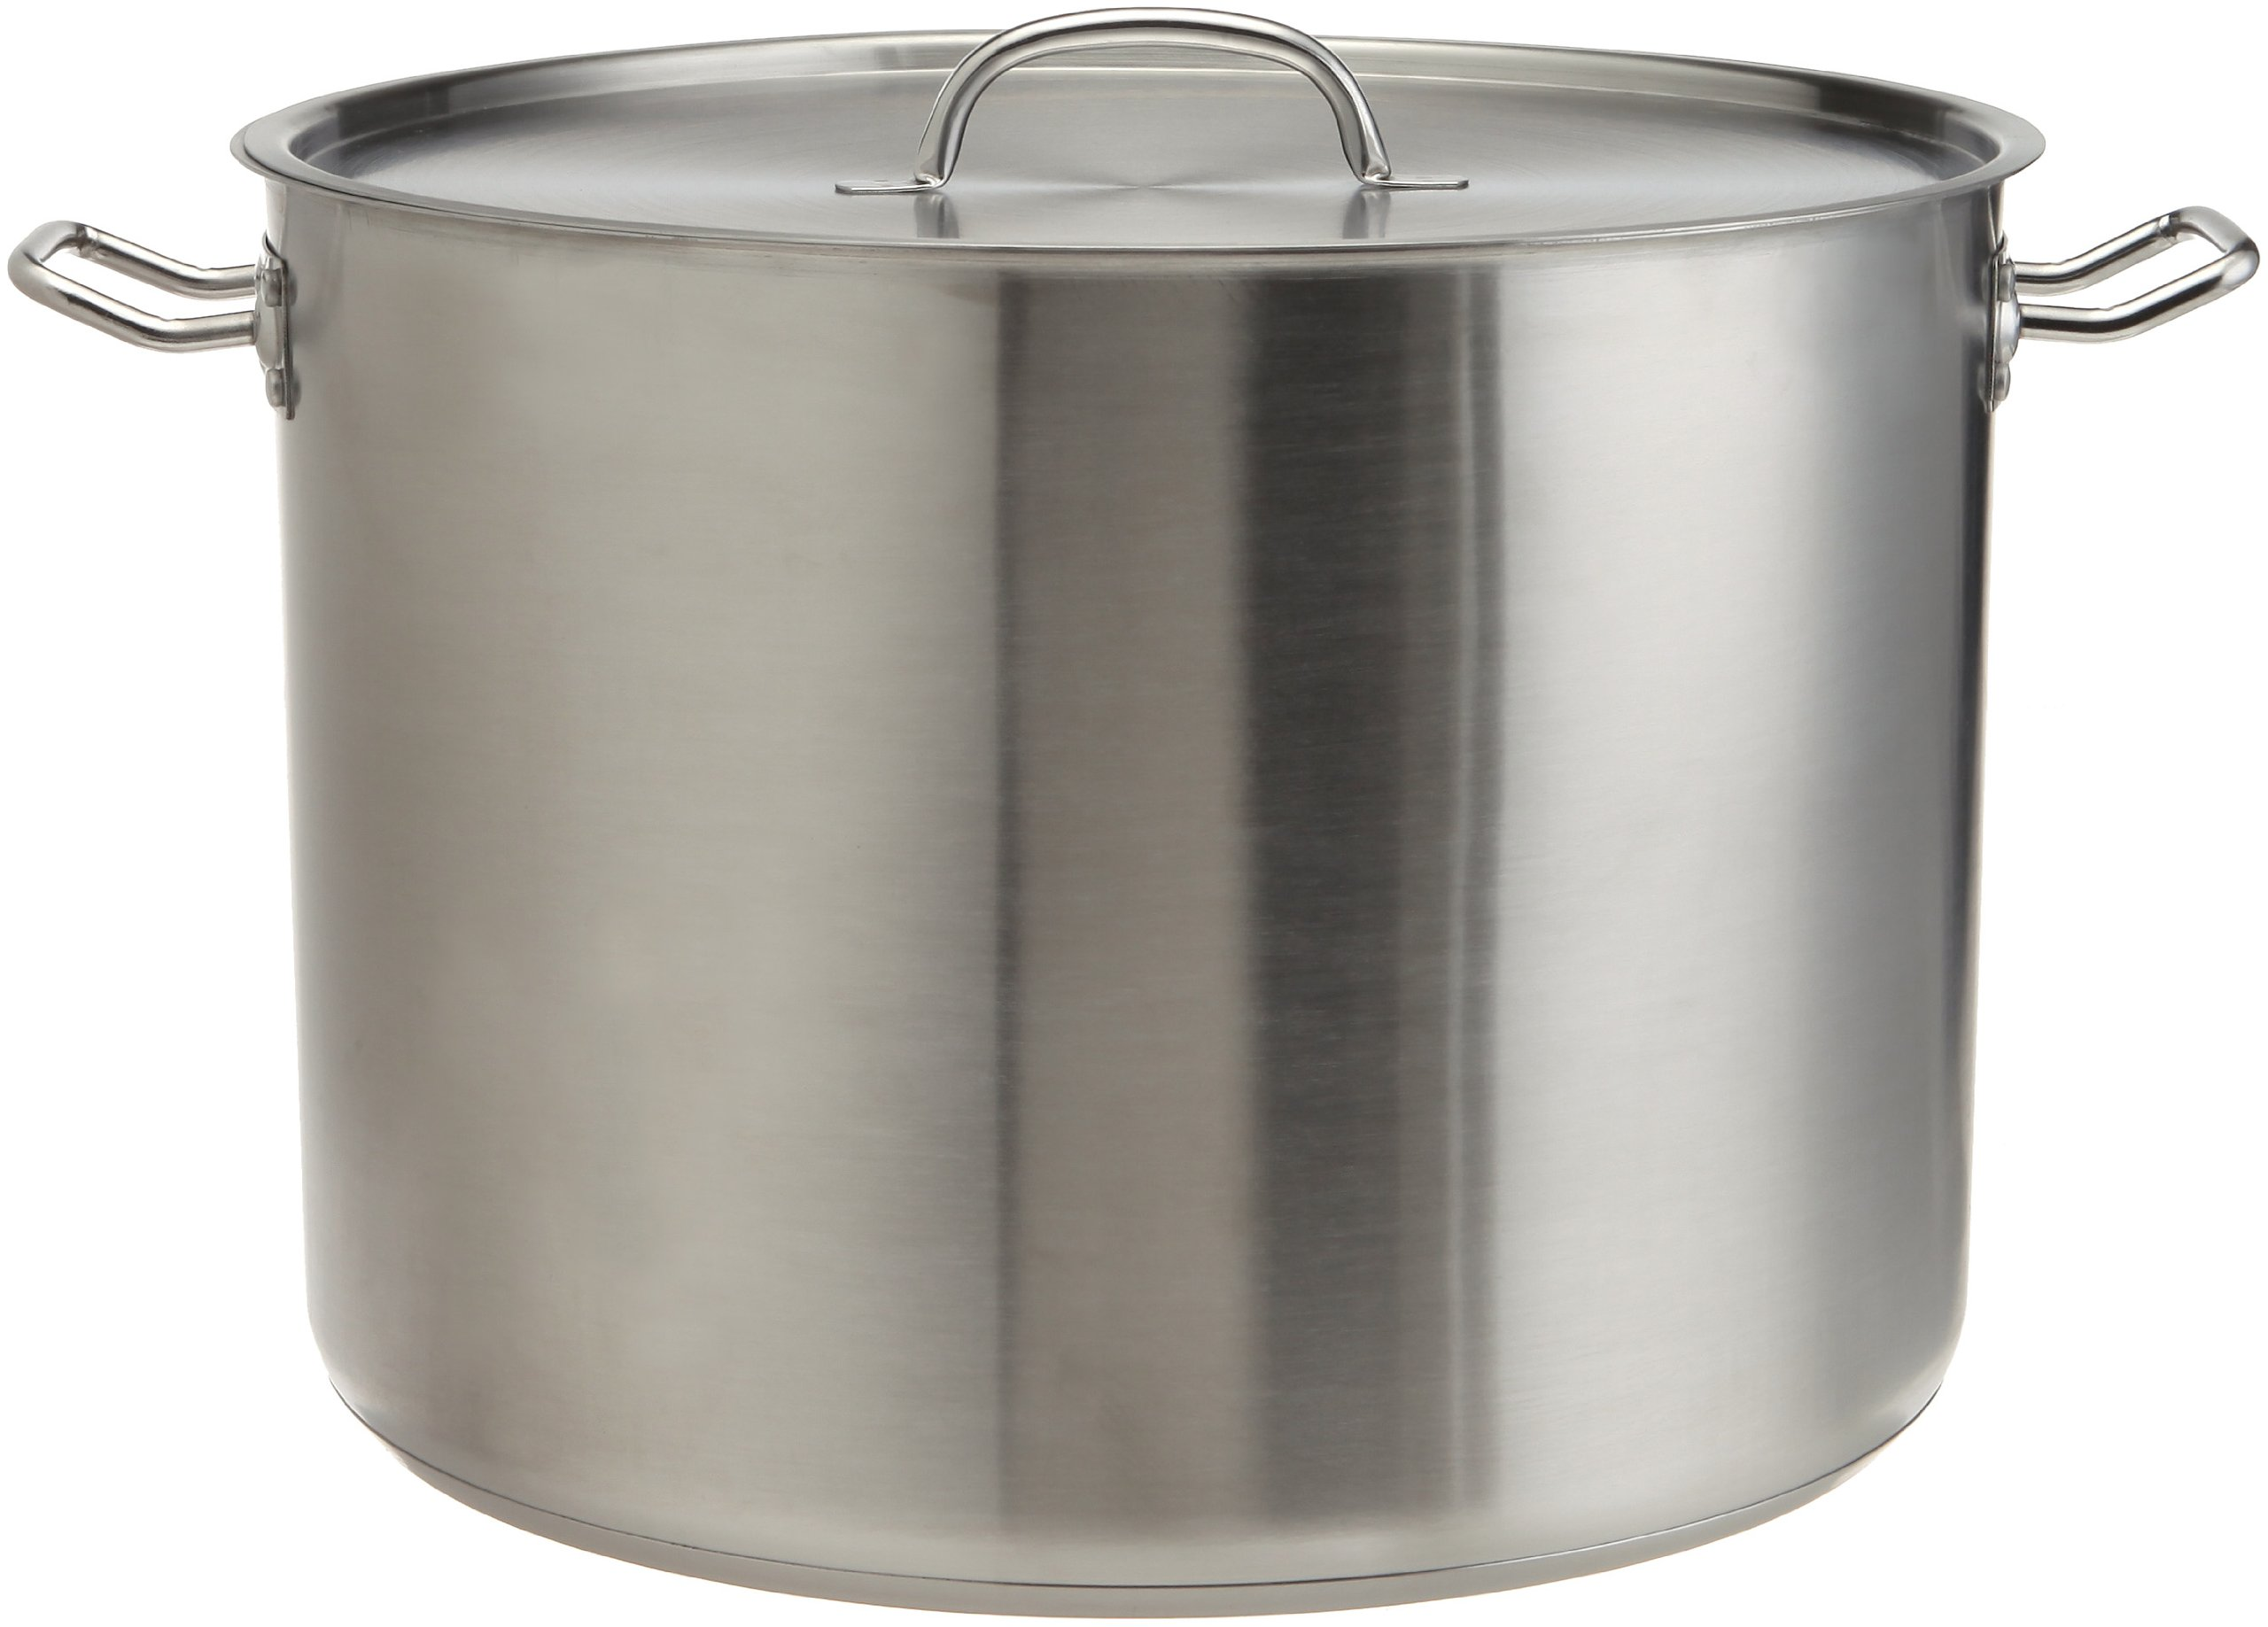 Prime Pacific Heavy Duty Stainless Steel Stock Pot with Lid, 35-Quart